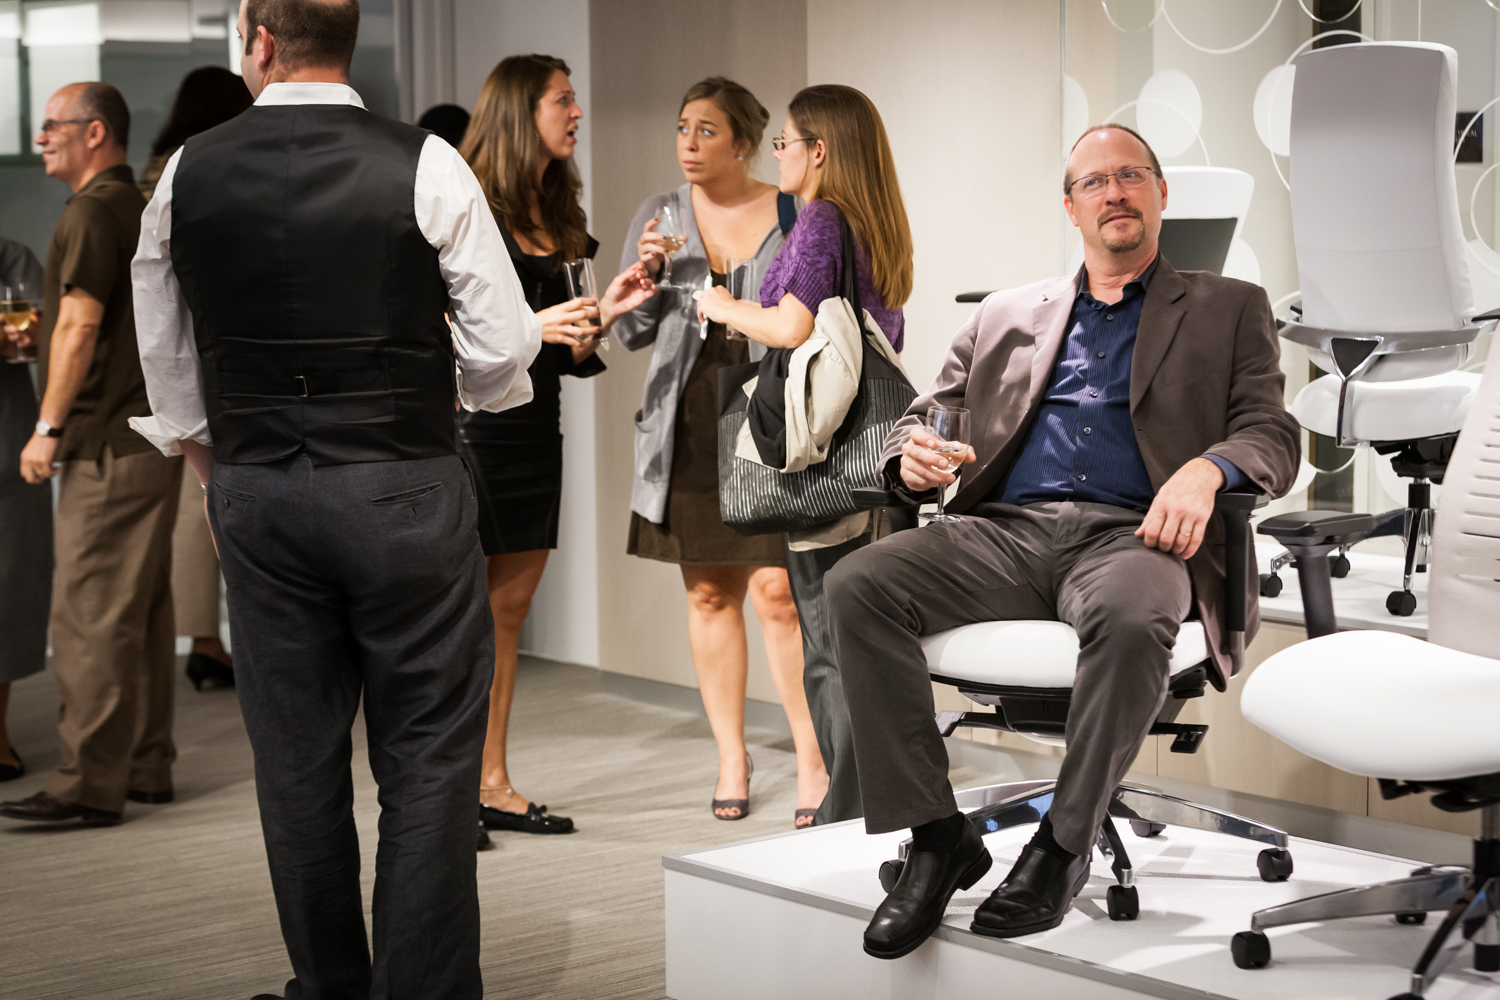 Guest seated in chair on display during corporate cocktail party